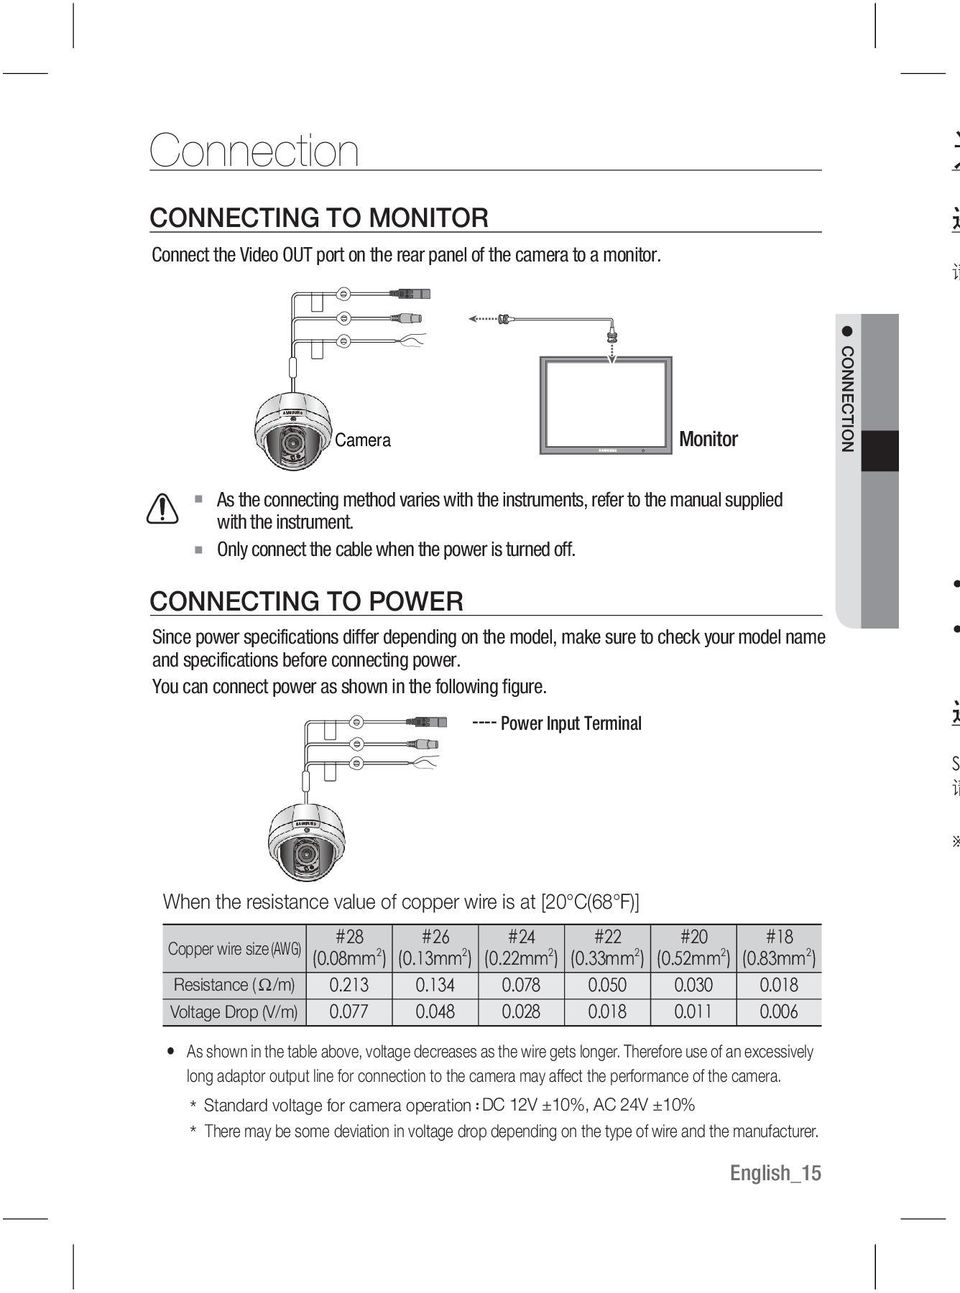 y CONNECTING TO POWER Since power specifications differ depending on the model, make sure to check your model name and specifications before connecting power.